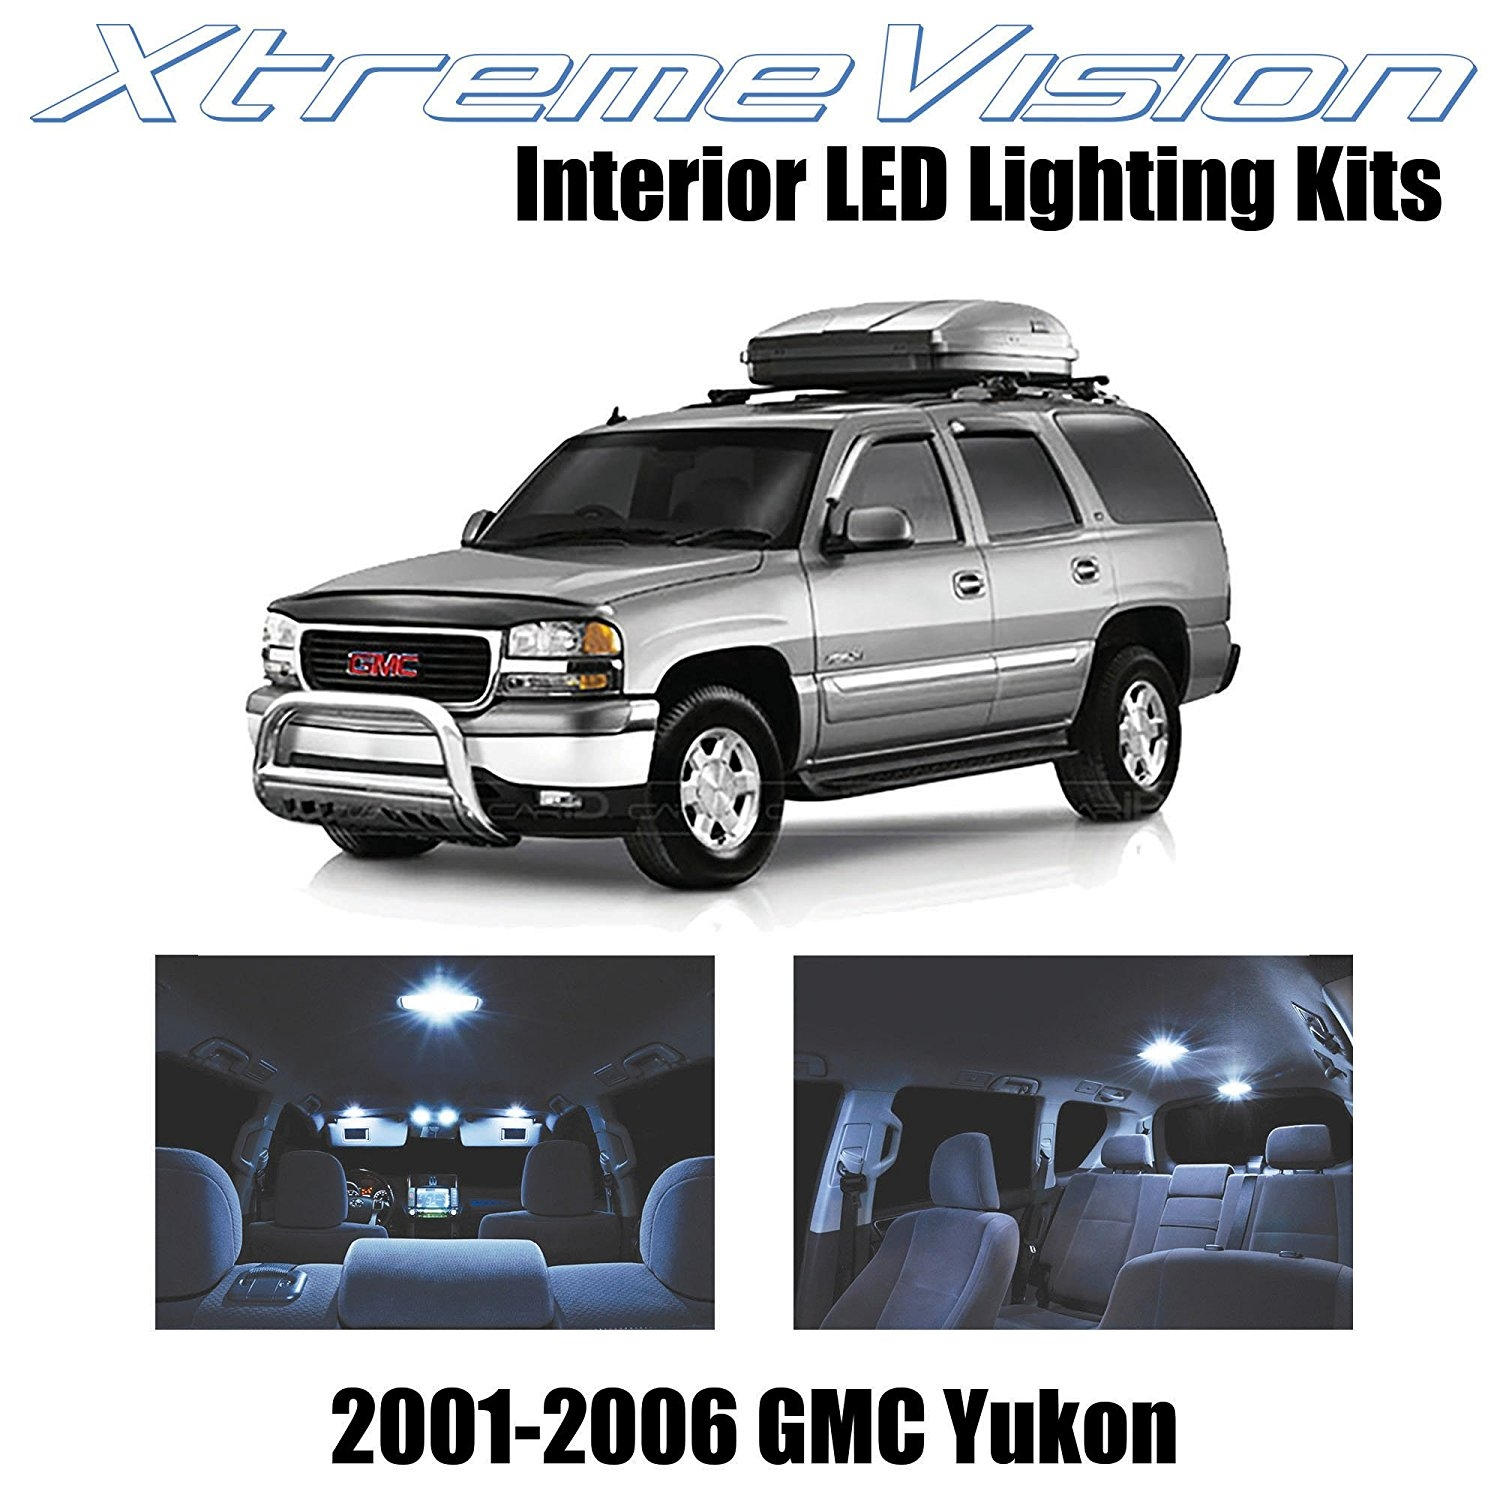 XtremeVision LED for GMC Yukon 2001 - 2006 (18 Pieces) Cool White Premium Interior LED Kit Package + Installation Tool